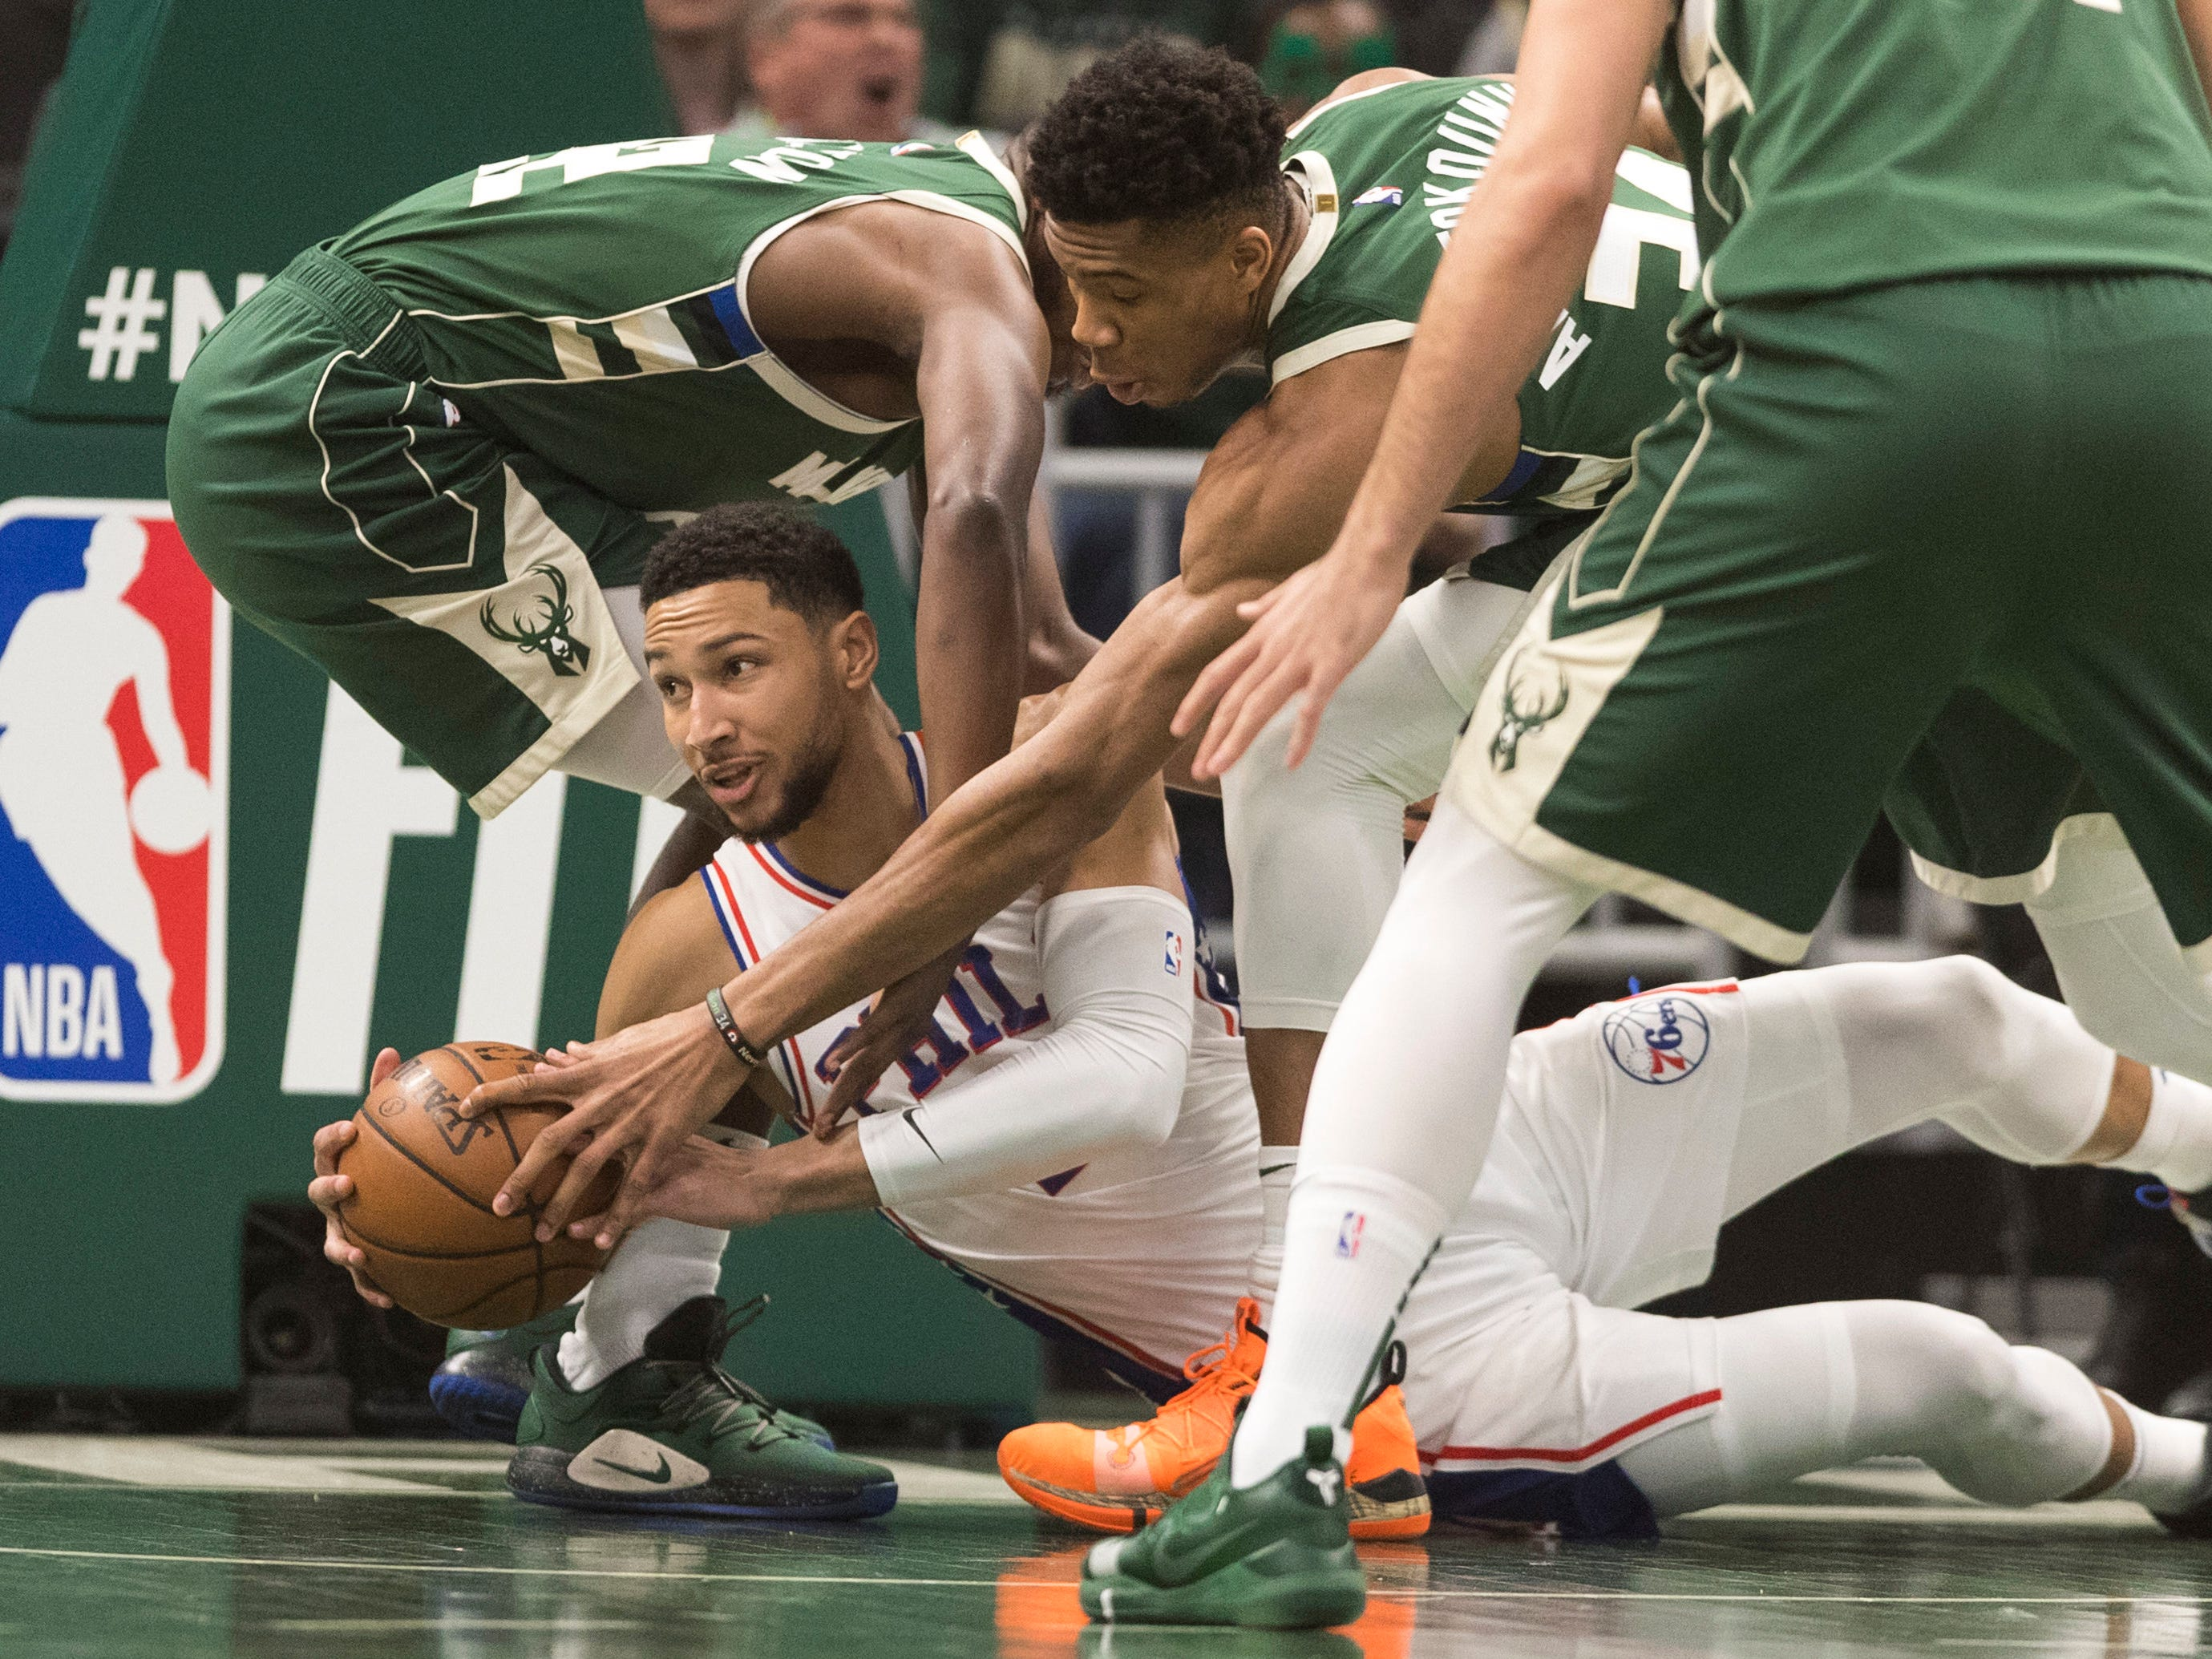 76ers guard Ben Simmons attempts to get the ball to an open teammate before Giannis Antetokounmpo can pry it from his hands during the first quarter.